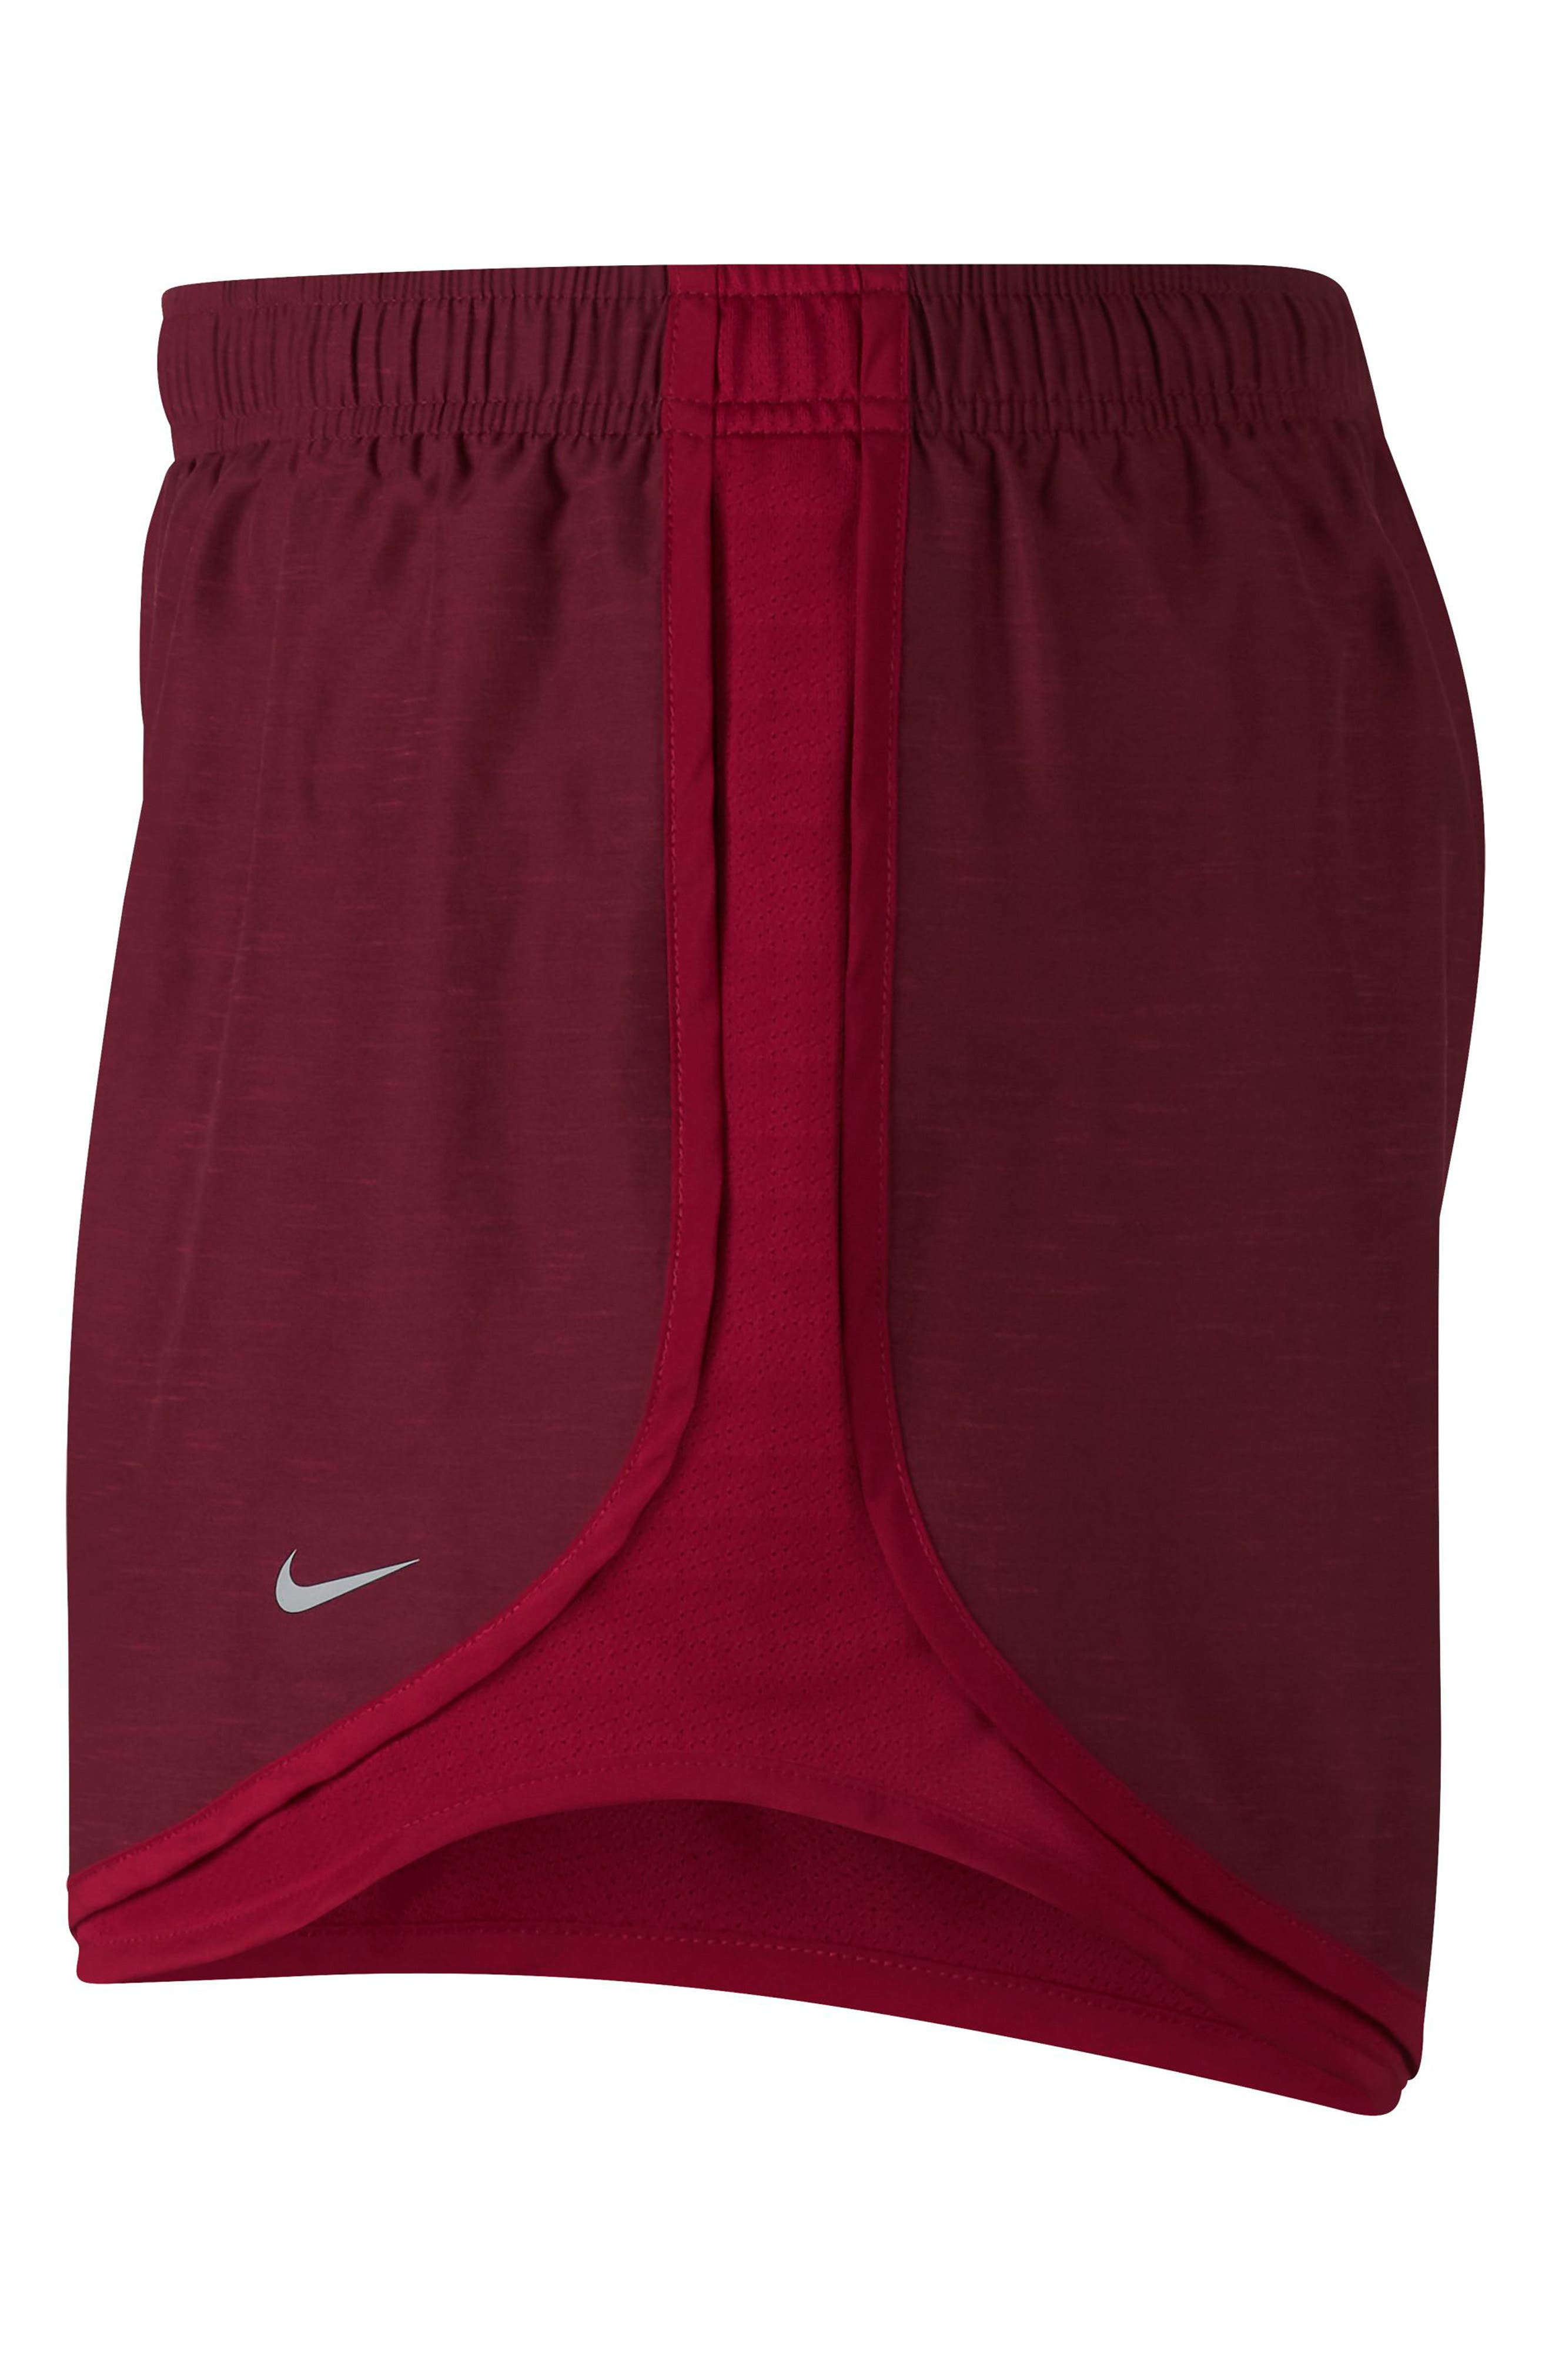 Dry Tempo Running Shorts,                             Alternate thumbnail 4, color,                             RED CRUSH/WOLF GREY